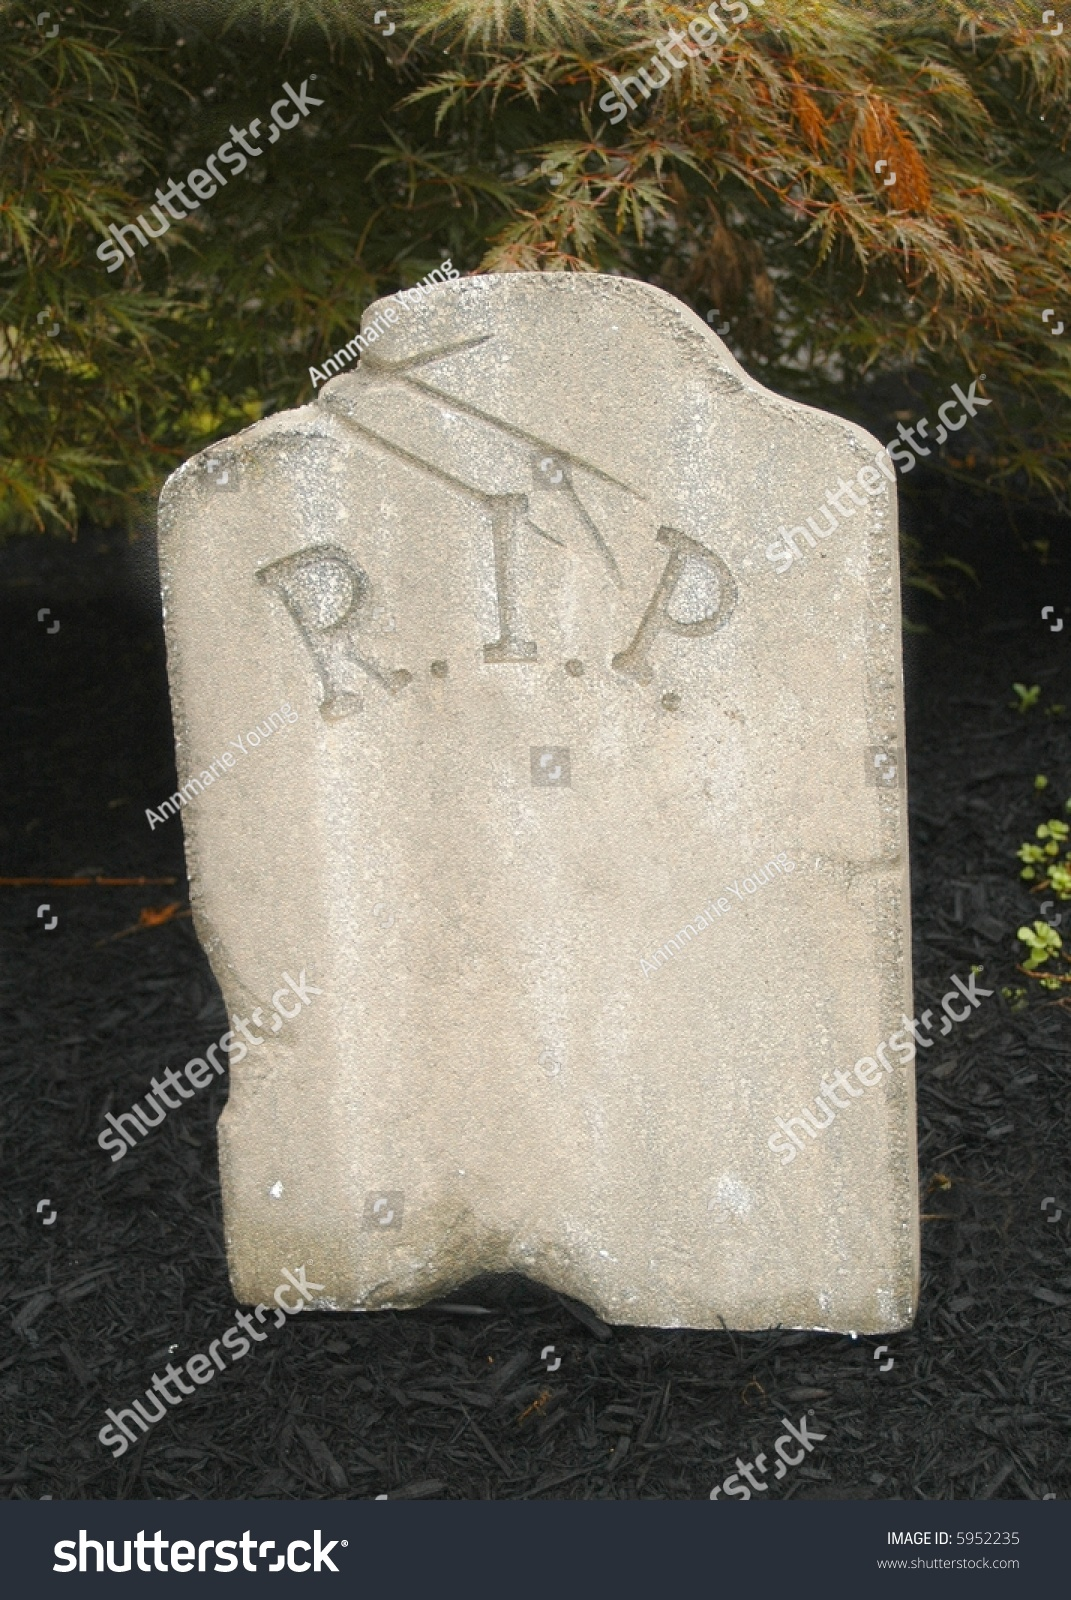 Halloween Tombstone With Blank Area For Writing Stock ...